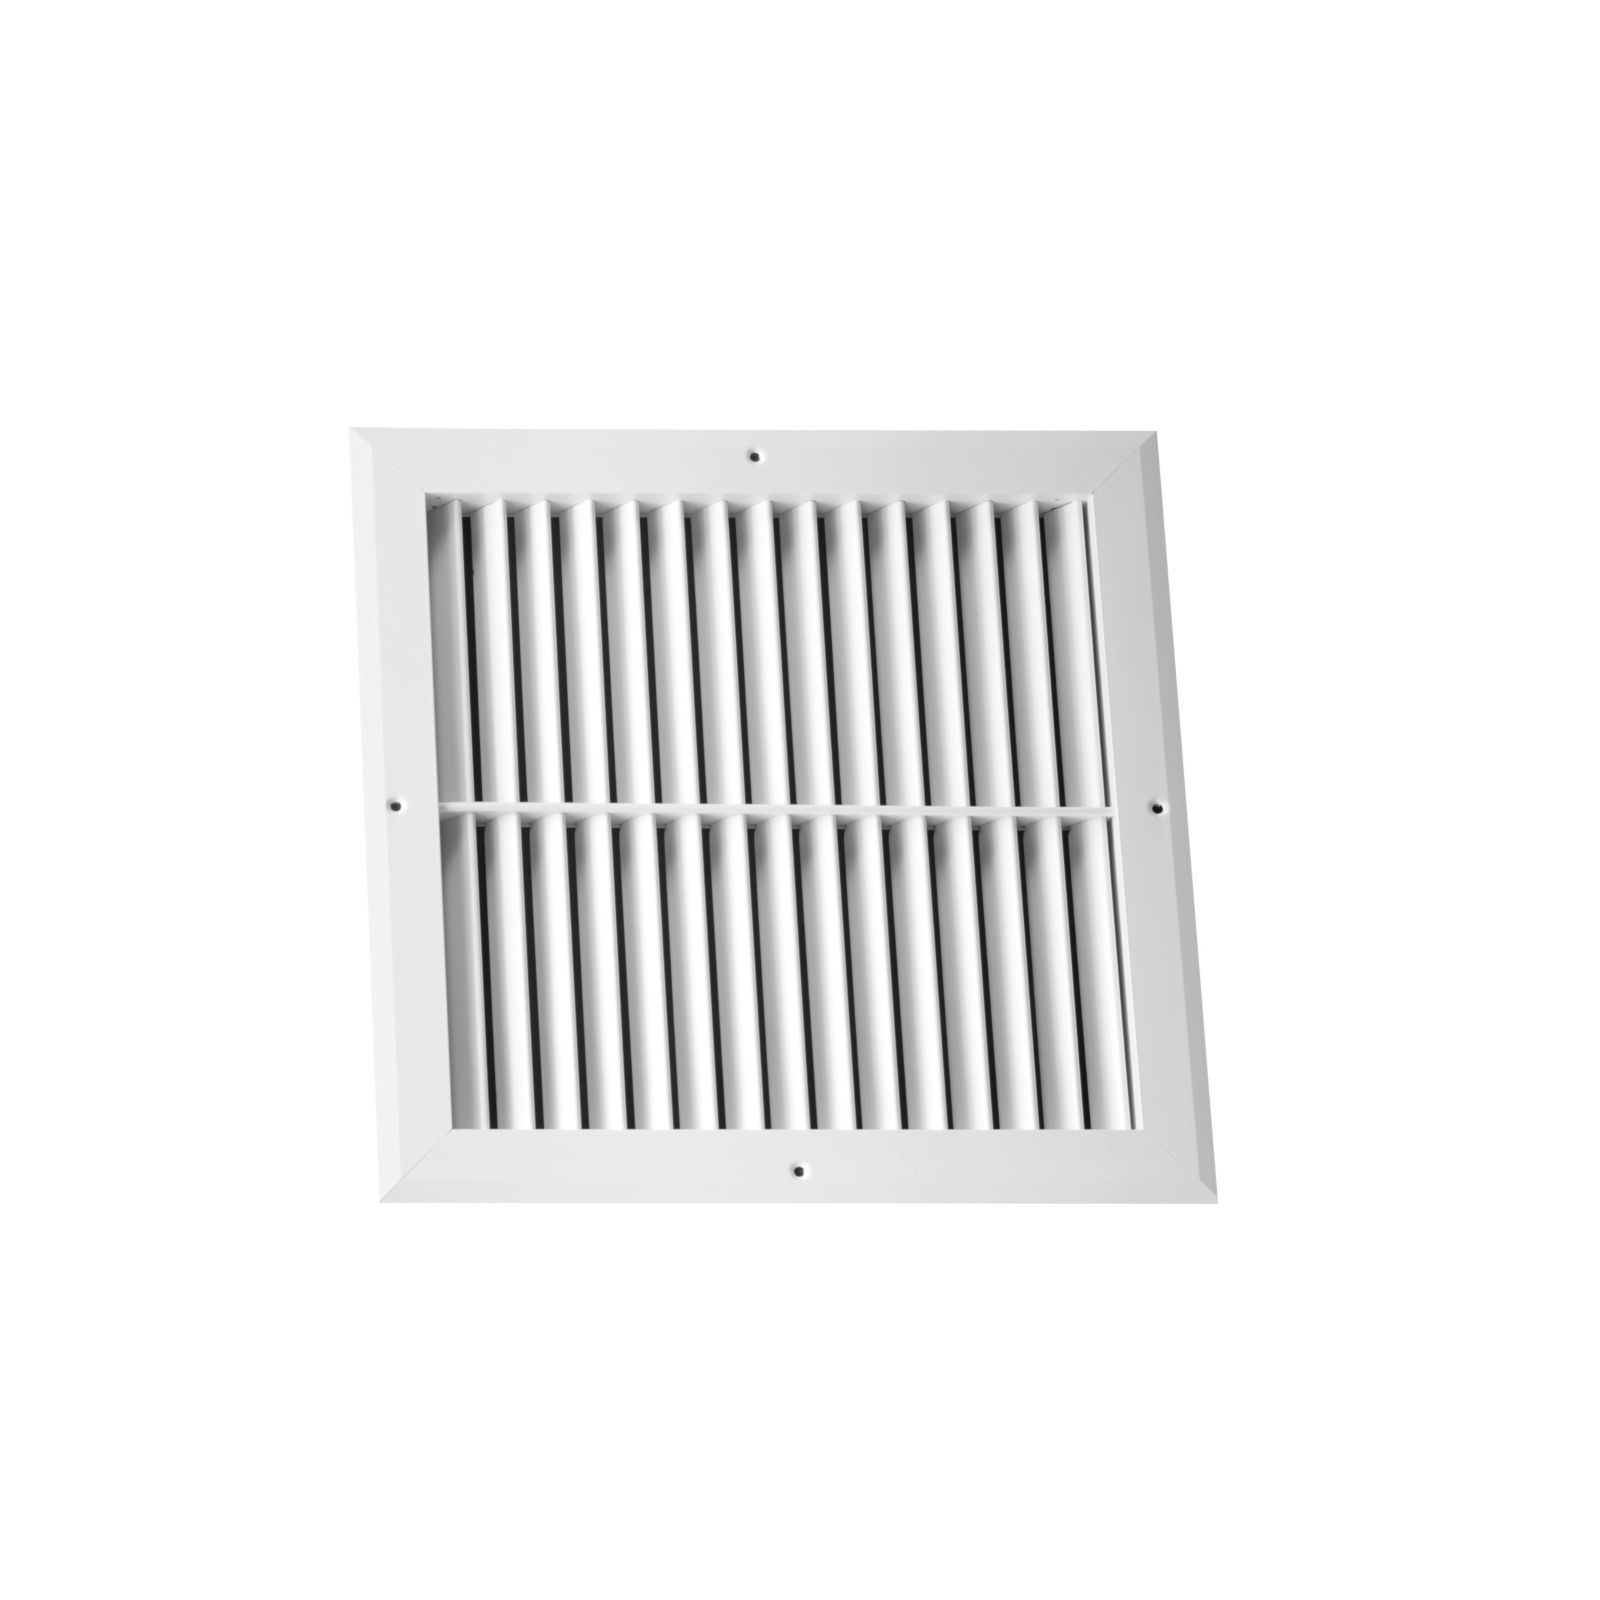 "Hart & Cooley 064103 - Aluminum Return Air Grille, 45-Degree Fixed Blade, White Finish, 30"" X 10"""